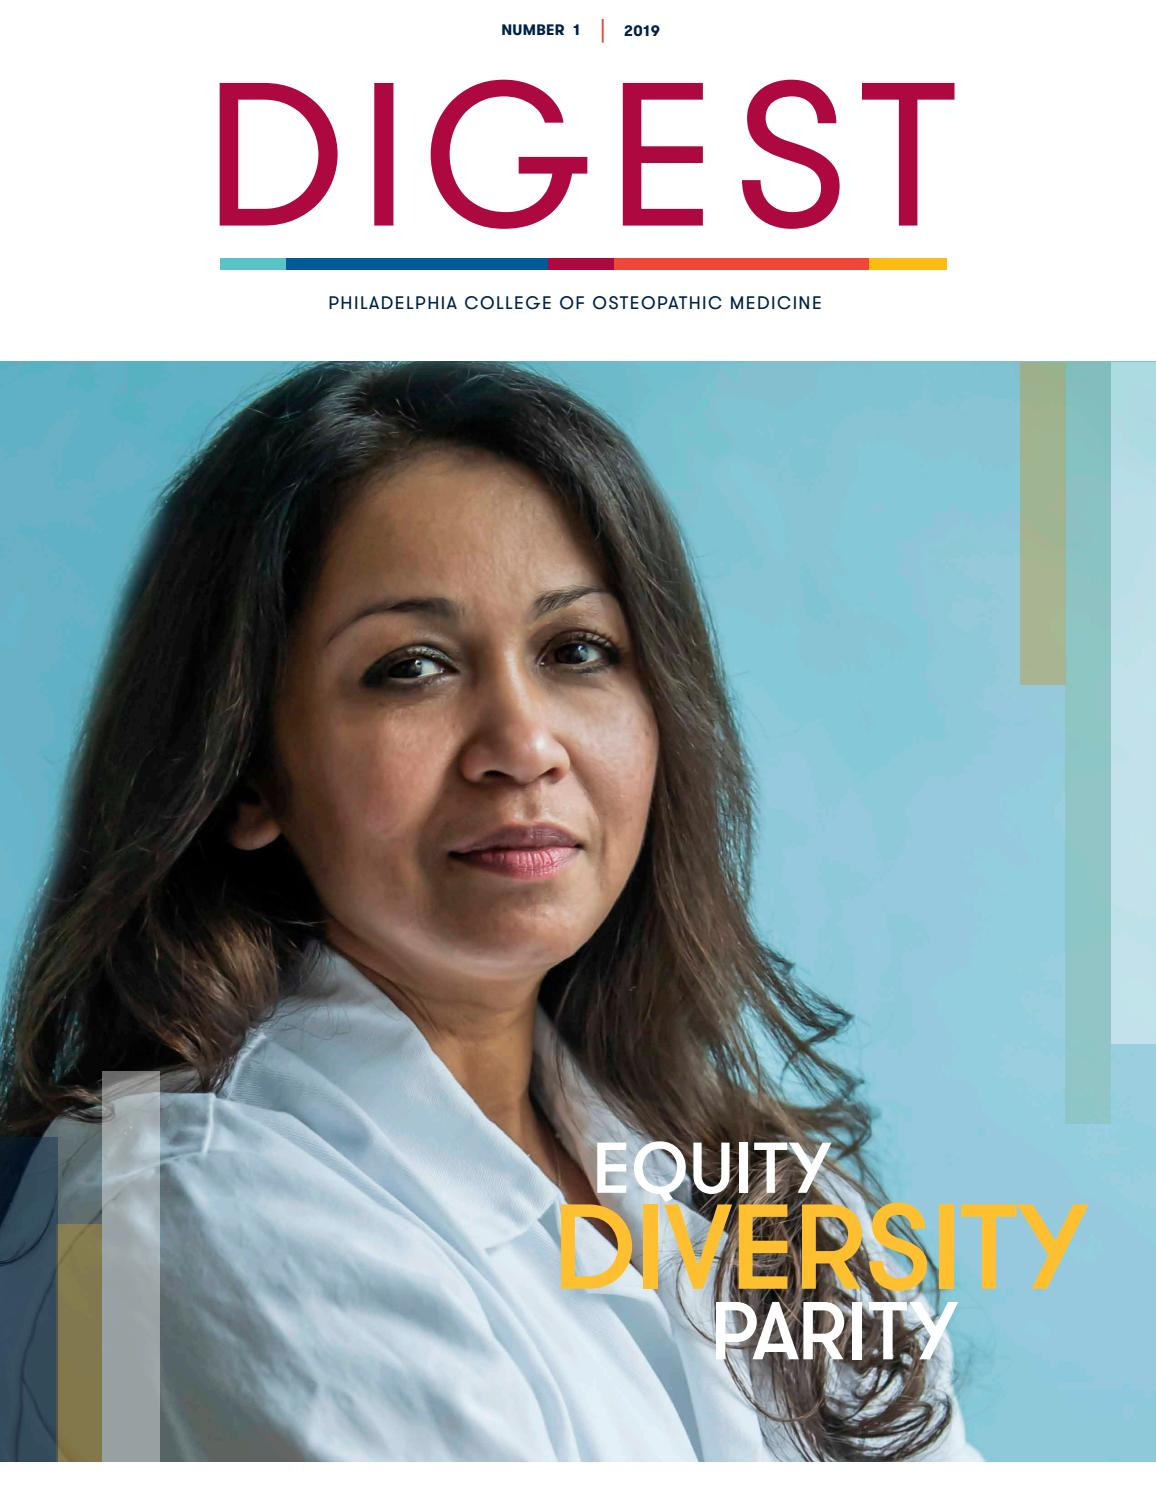 PCOM Digest 1 2019 by Philadelphia College of Osteopathic